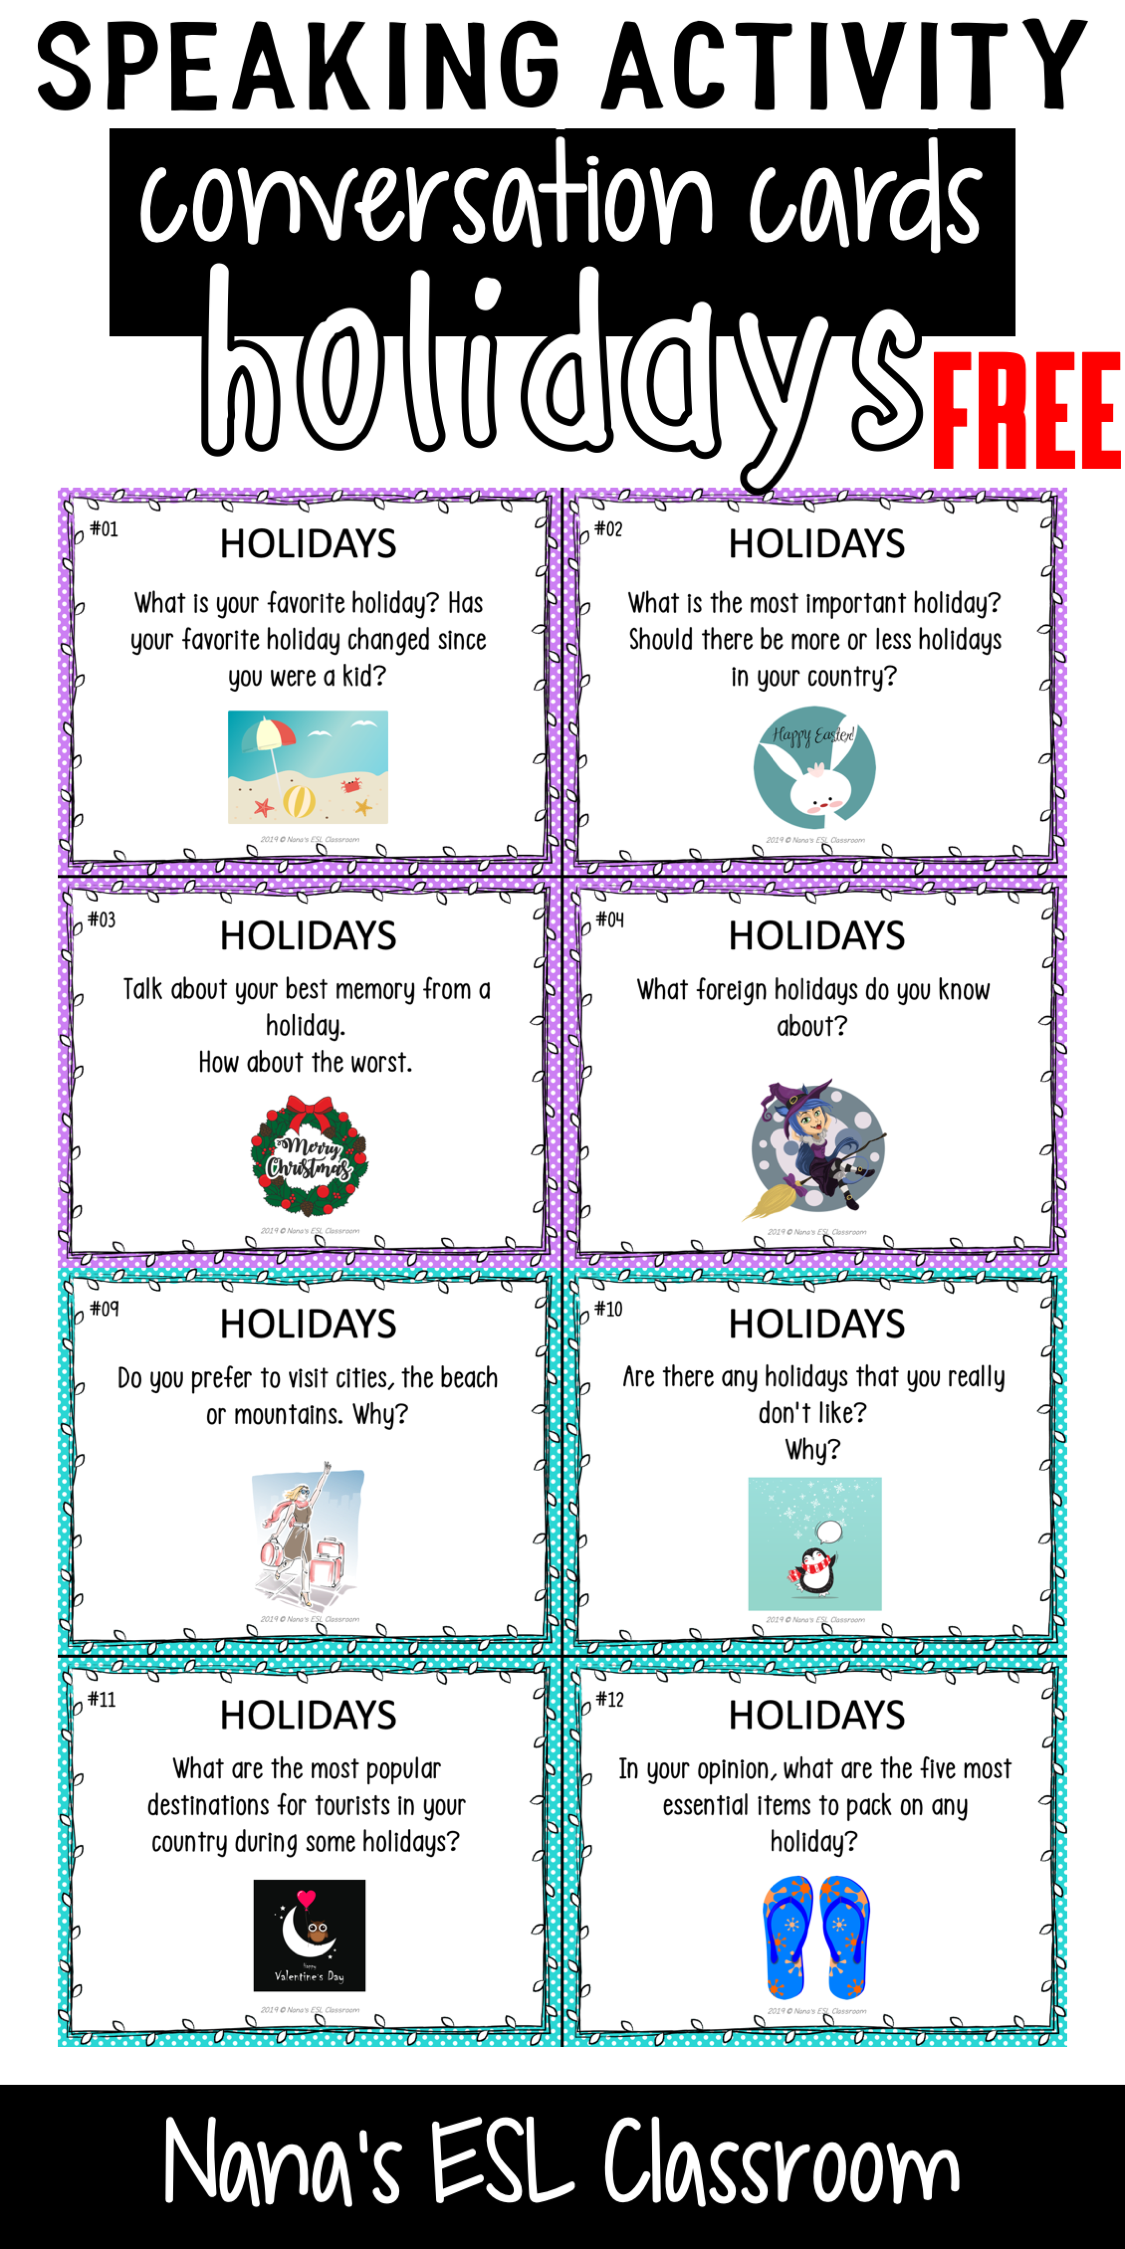 Conversation Starters About Holidays Free In